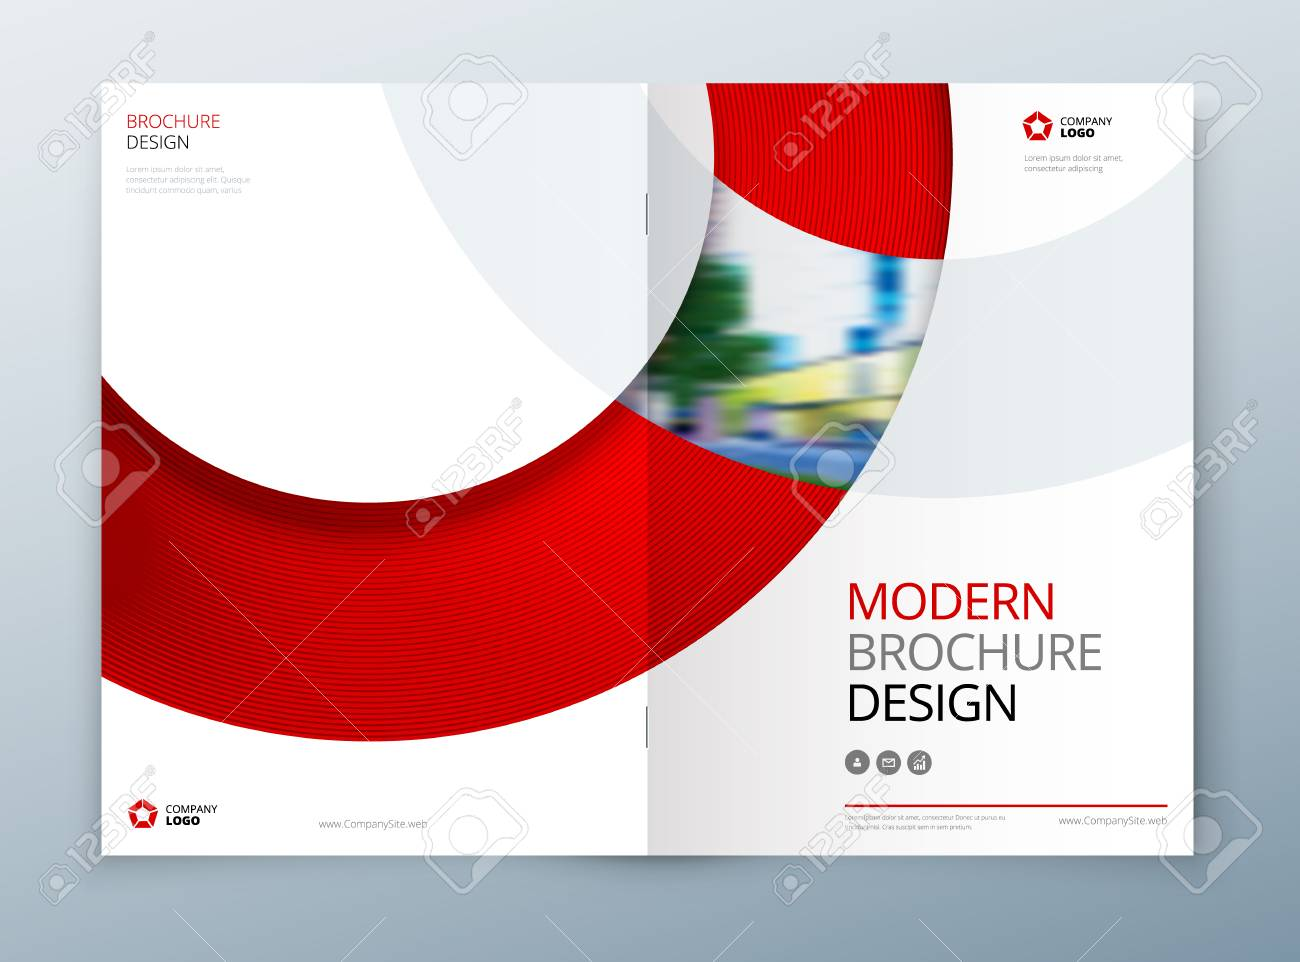 Brochure Template Layout Design  Corporate Business Annual Report     Brochure template layout design  Corporate business annual report  catalog   magazine  flyer mockup